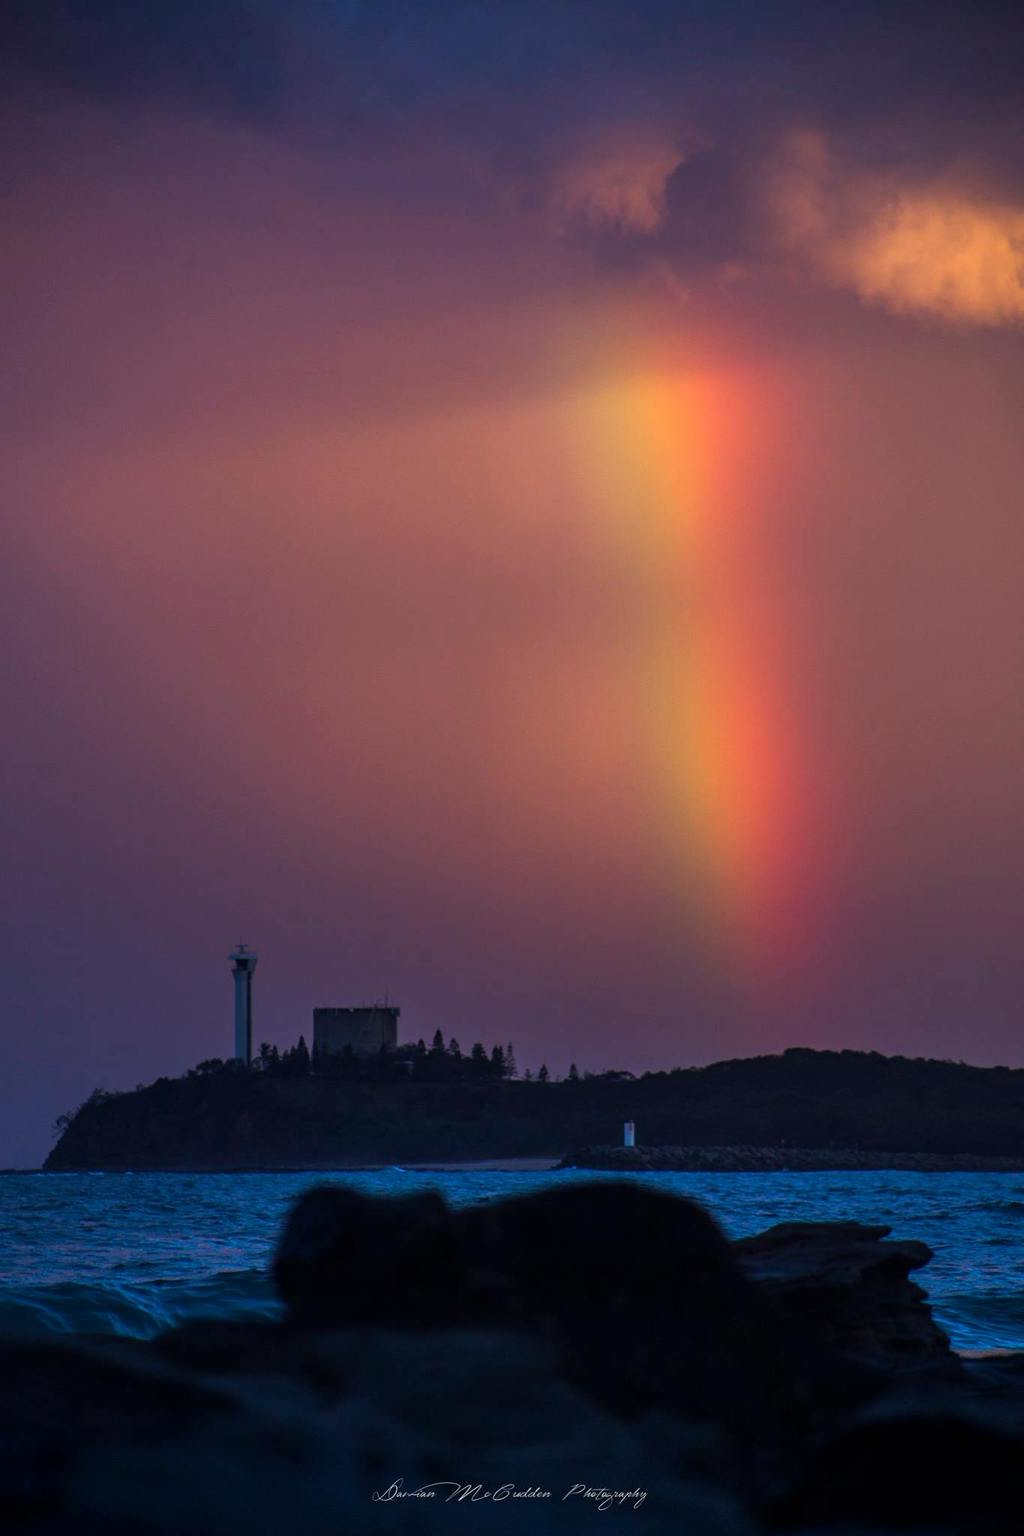 Post storm rainbow, Took this after a storm cleared the coast off Mooloolaba, Australia.  This was taken during Sunset last year